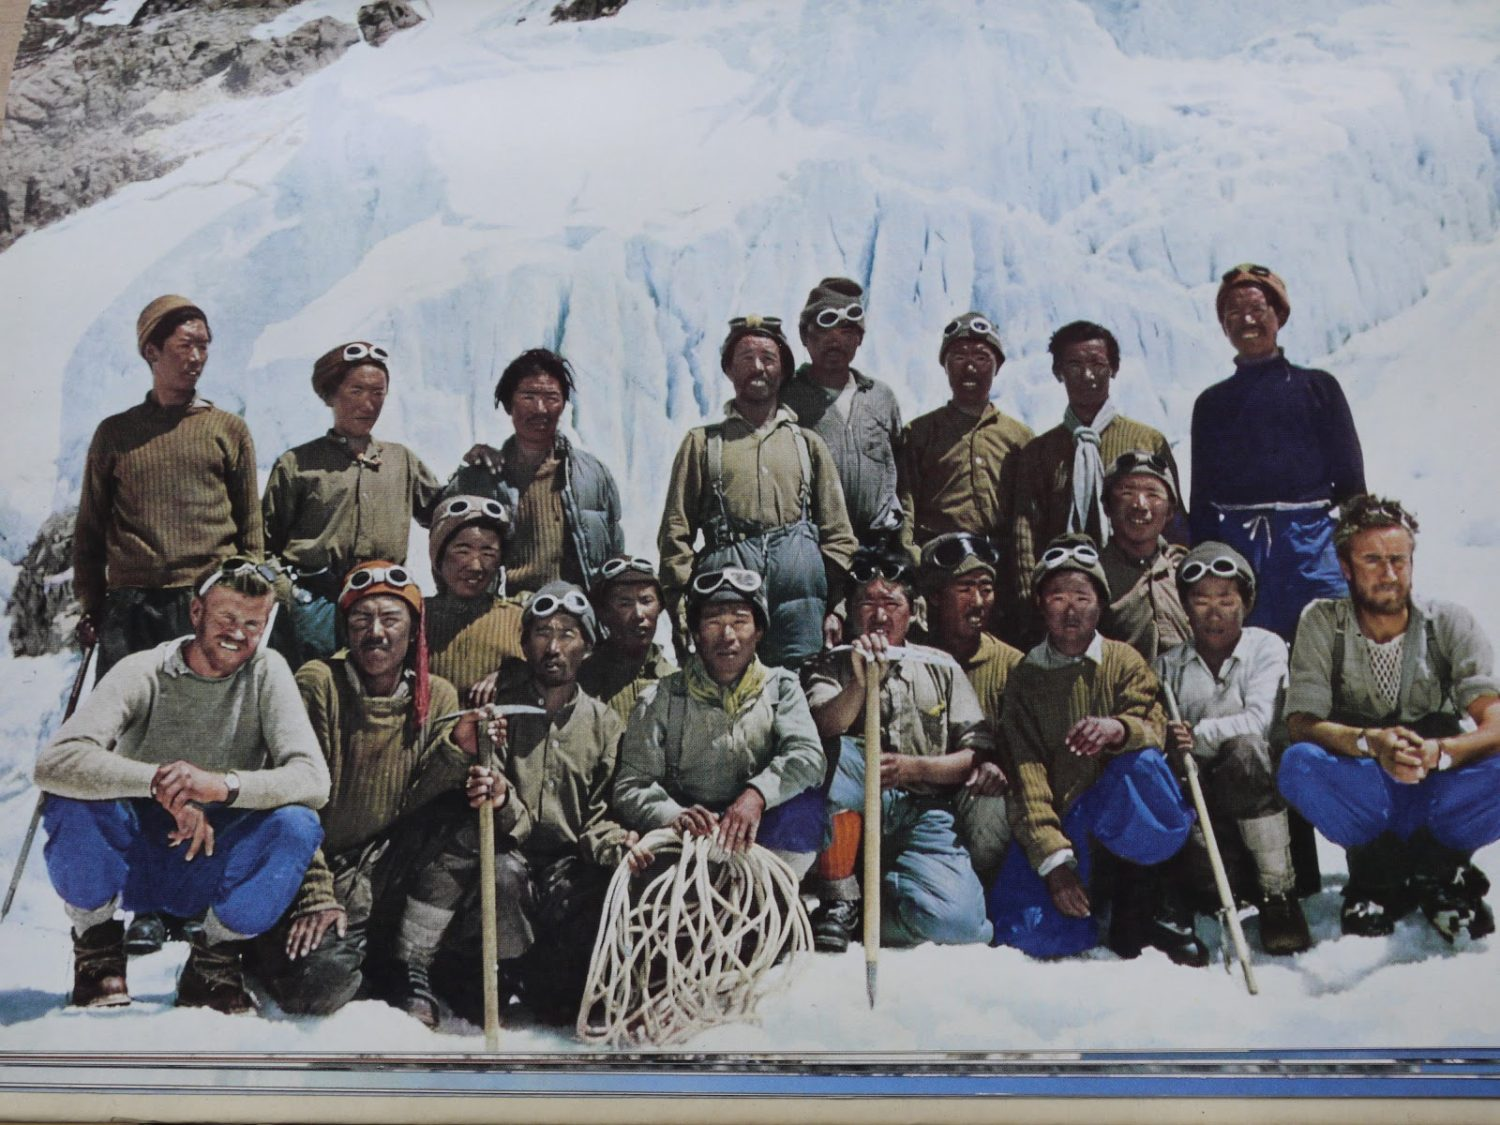 team, john hunt, climb, first, summit, everest, mountaineering, himalayas